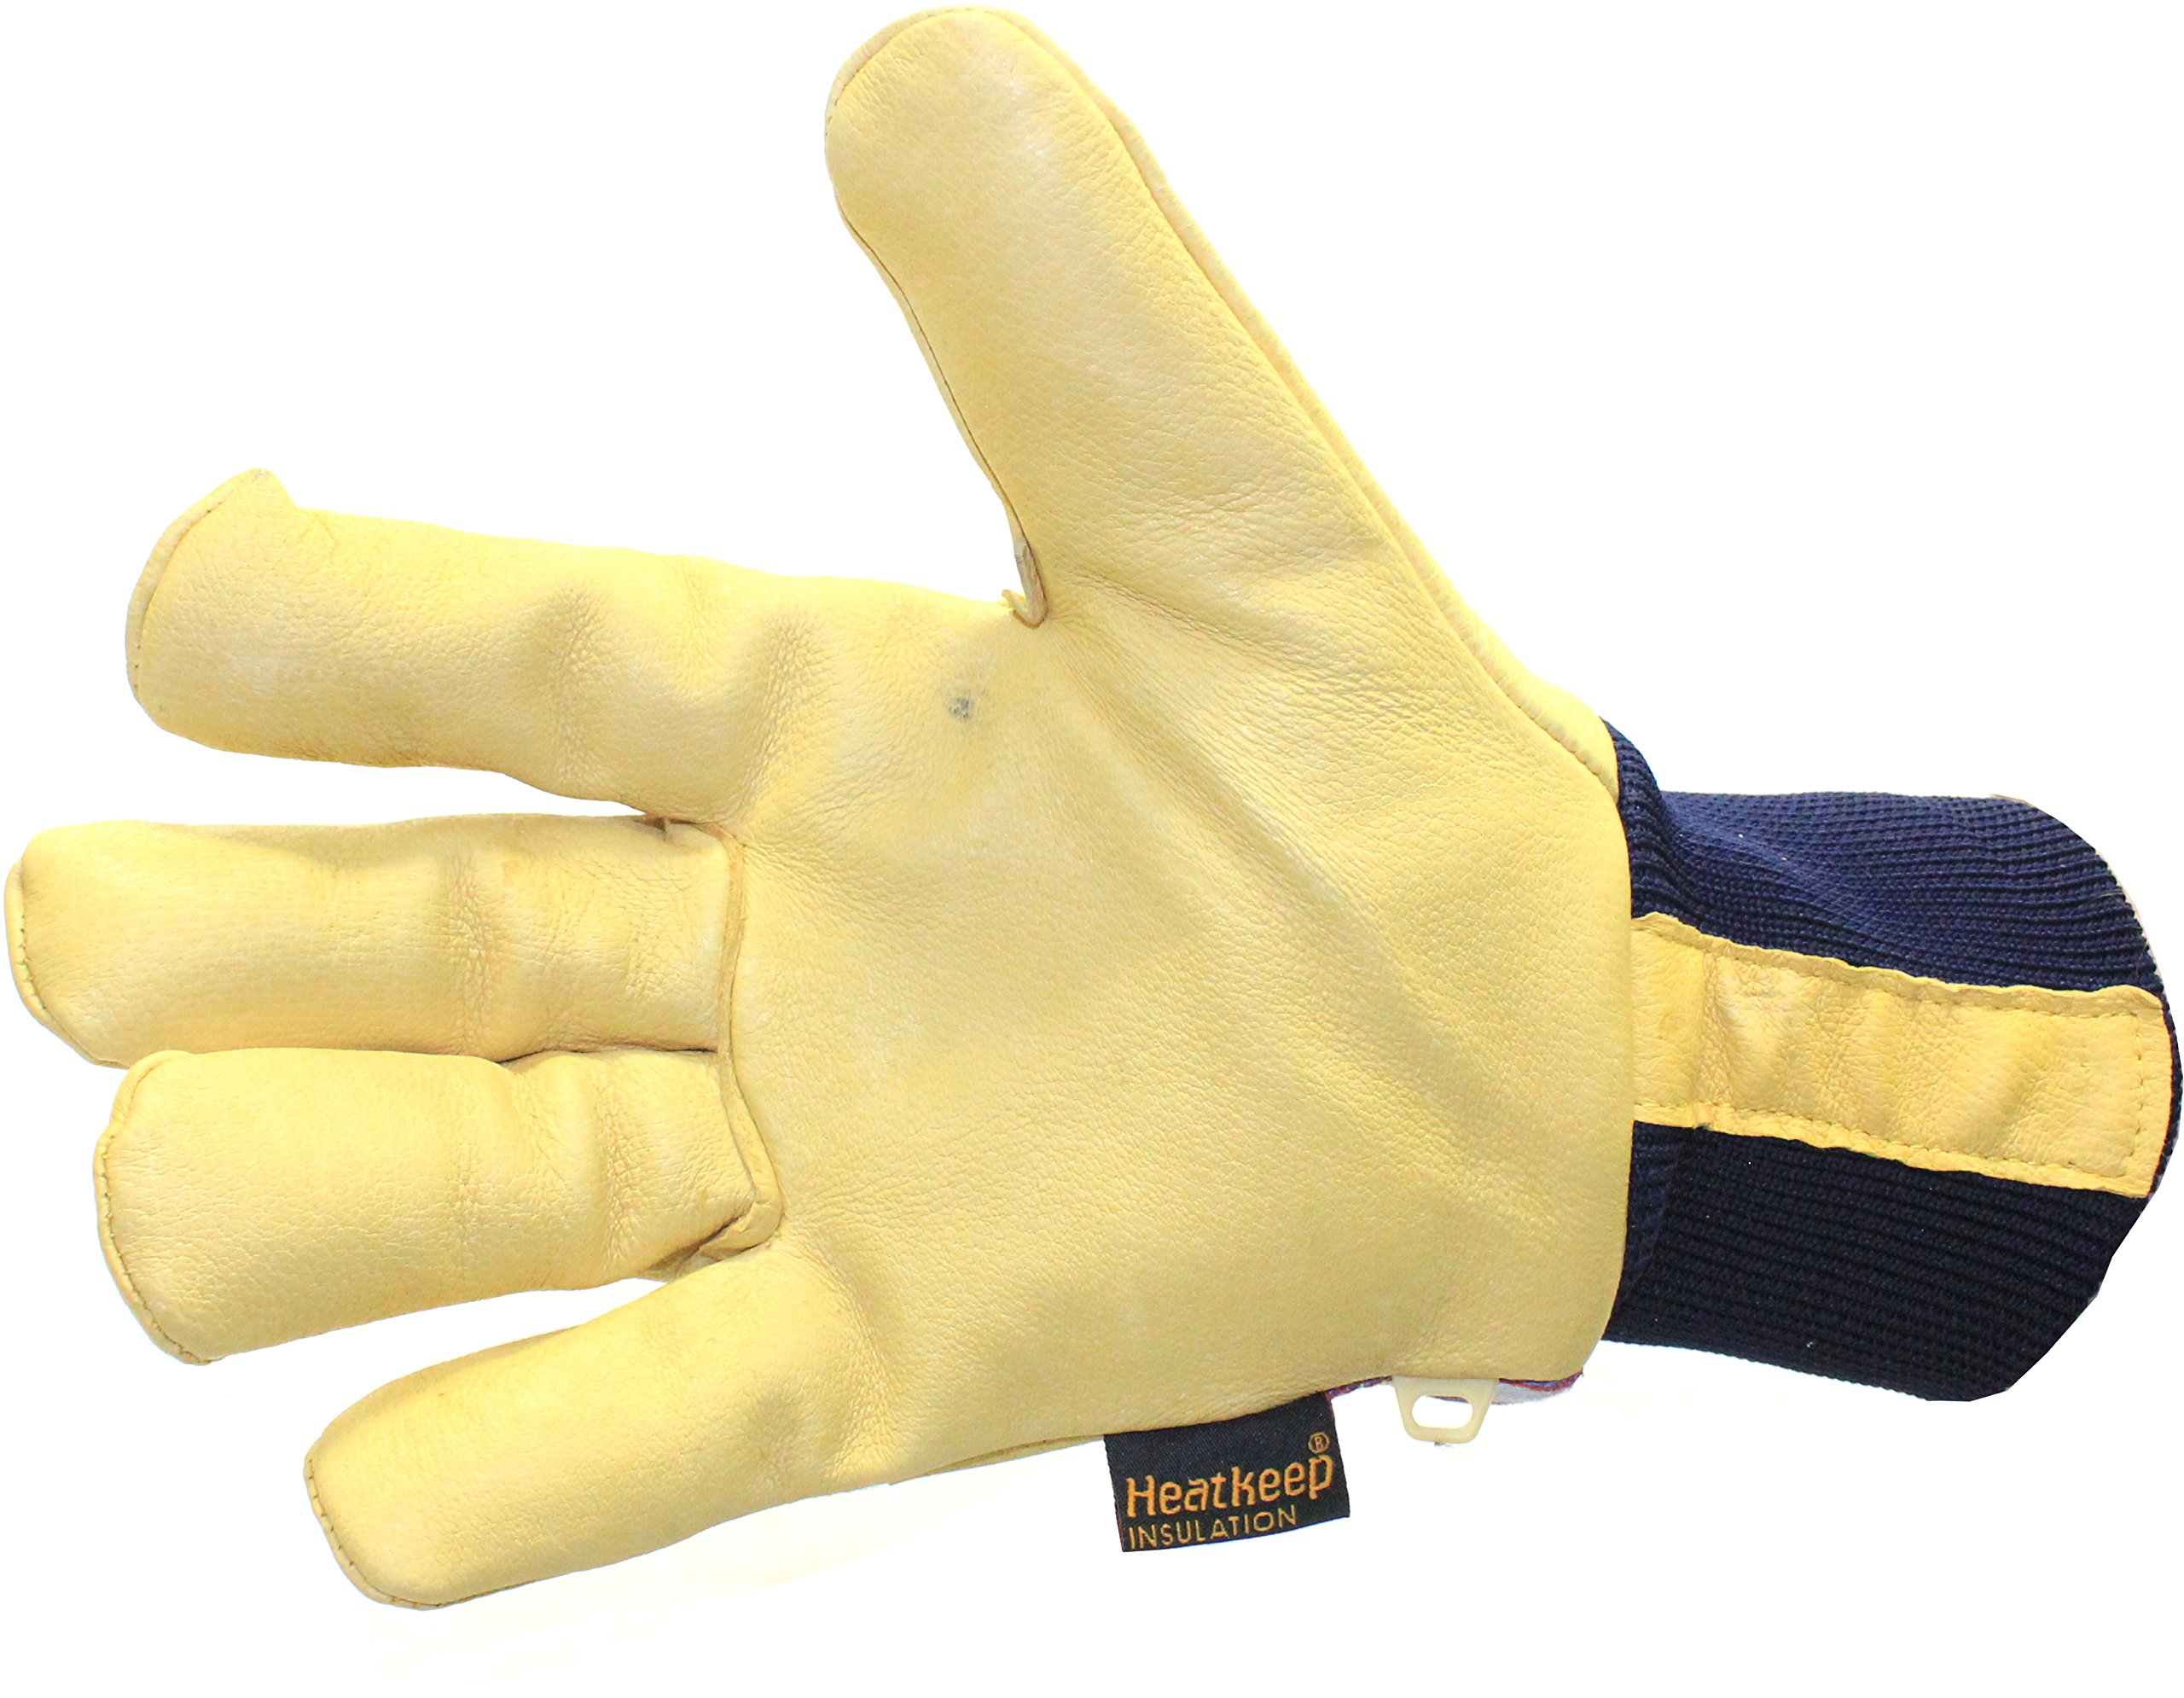 Kinco 1927KW Lined Grain Pigskin Leather Glove with Knit Wrist, Work, Large, Palomino (Pack of 6 Pairs) by KINCO INTERNATIONAL (Image #4)